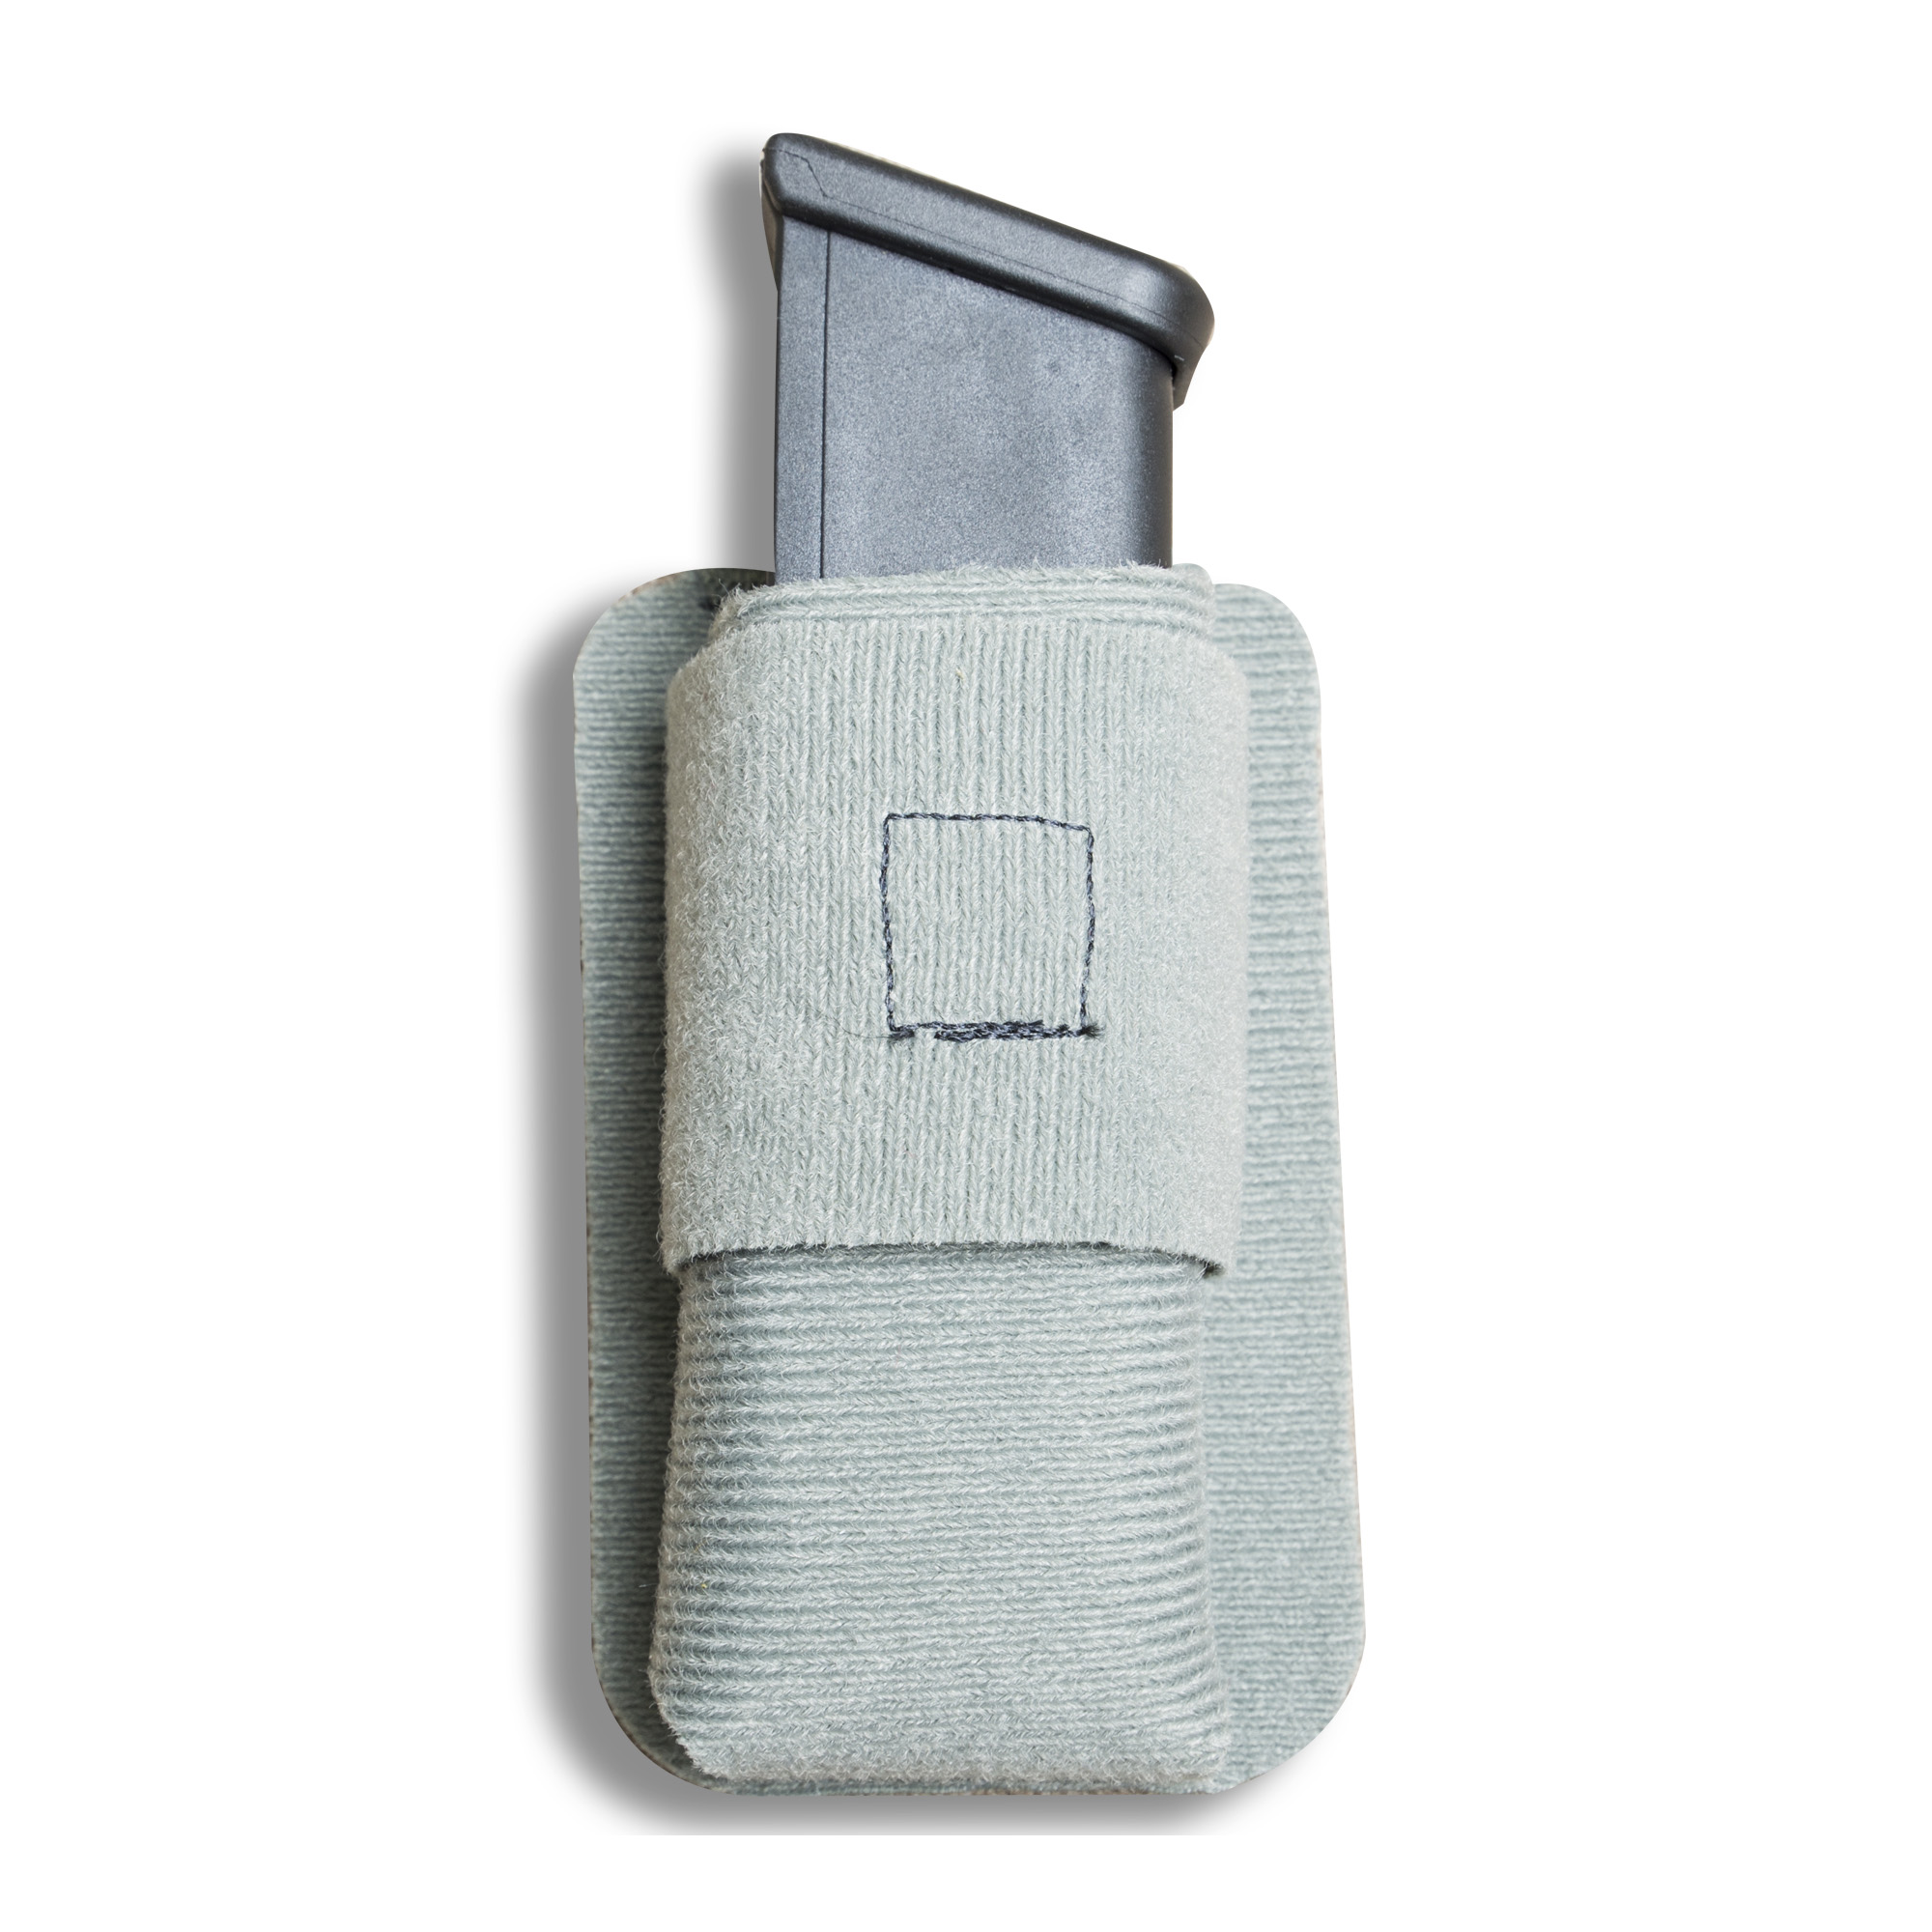 """Experience the unique storage options of Vertx(R) Tactigami with the MAK Standard accessory system. MAK stands for MAGs and Kit"""" meaning their patent pending wrap adapts to fit smaller gear"""" from MAGs to flashlights"""" cell phones and more. Built from Velcro(R) One-Wrap(R)"""" this accessory piece literally wraps around your item for a completely customized fit"""" then attaches to loop panel for unparalleled organizational capability. Pair with any of the Vertx(R) bags and packs for everyday carry options and ultimate concealment. The MAK Standard is sized to fit smaller items such as flashlights"""" pistol magazines and larger pocket knives."""